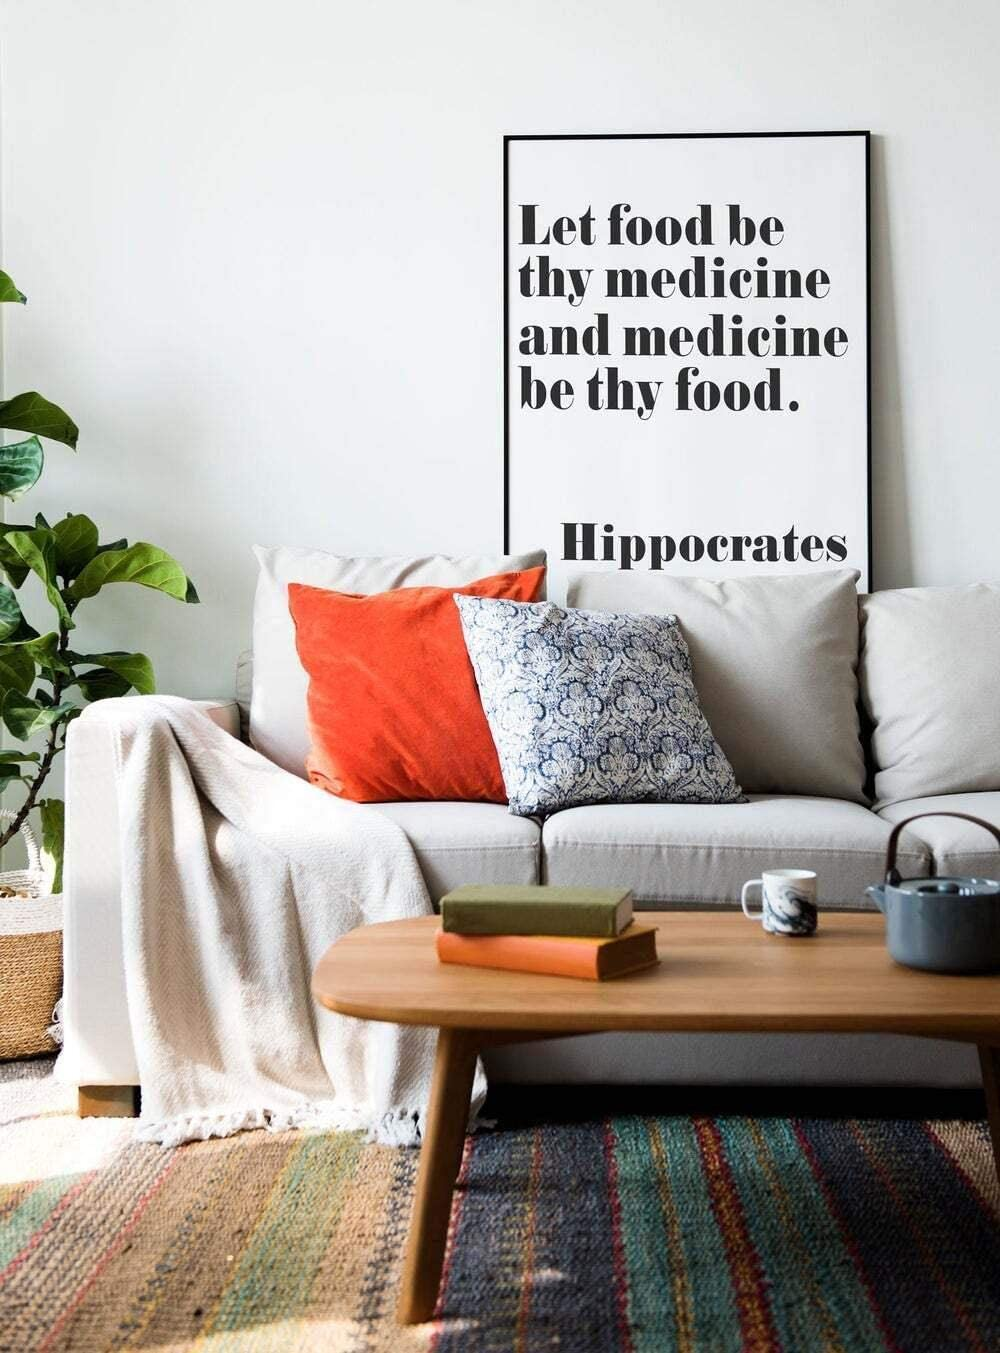 Hippocrates Quote Health Quote Let Food Be Thy Medicine Wall Art Print Poster, Canvas Gallery Wraps Wall Decoration